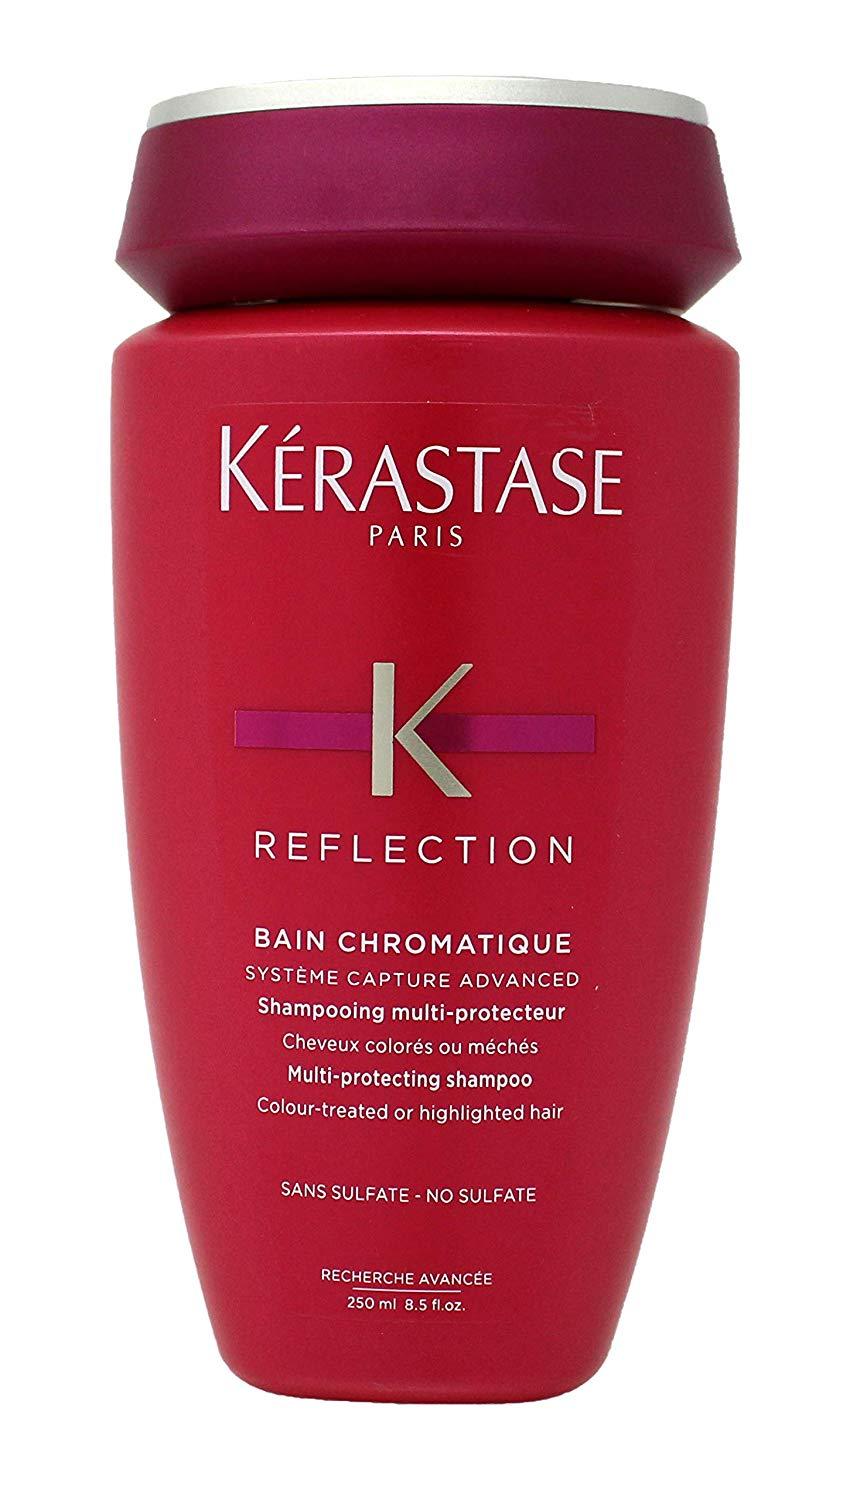 Kerastase Reflection Bain Chromatique